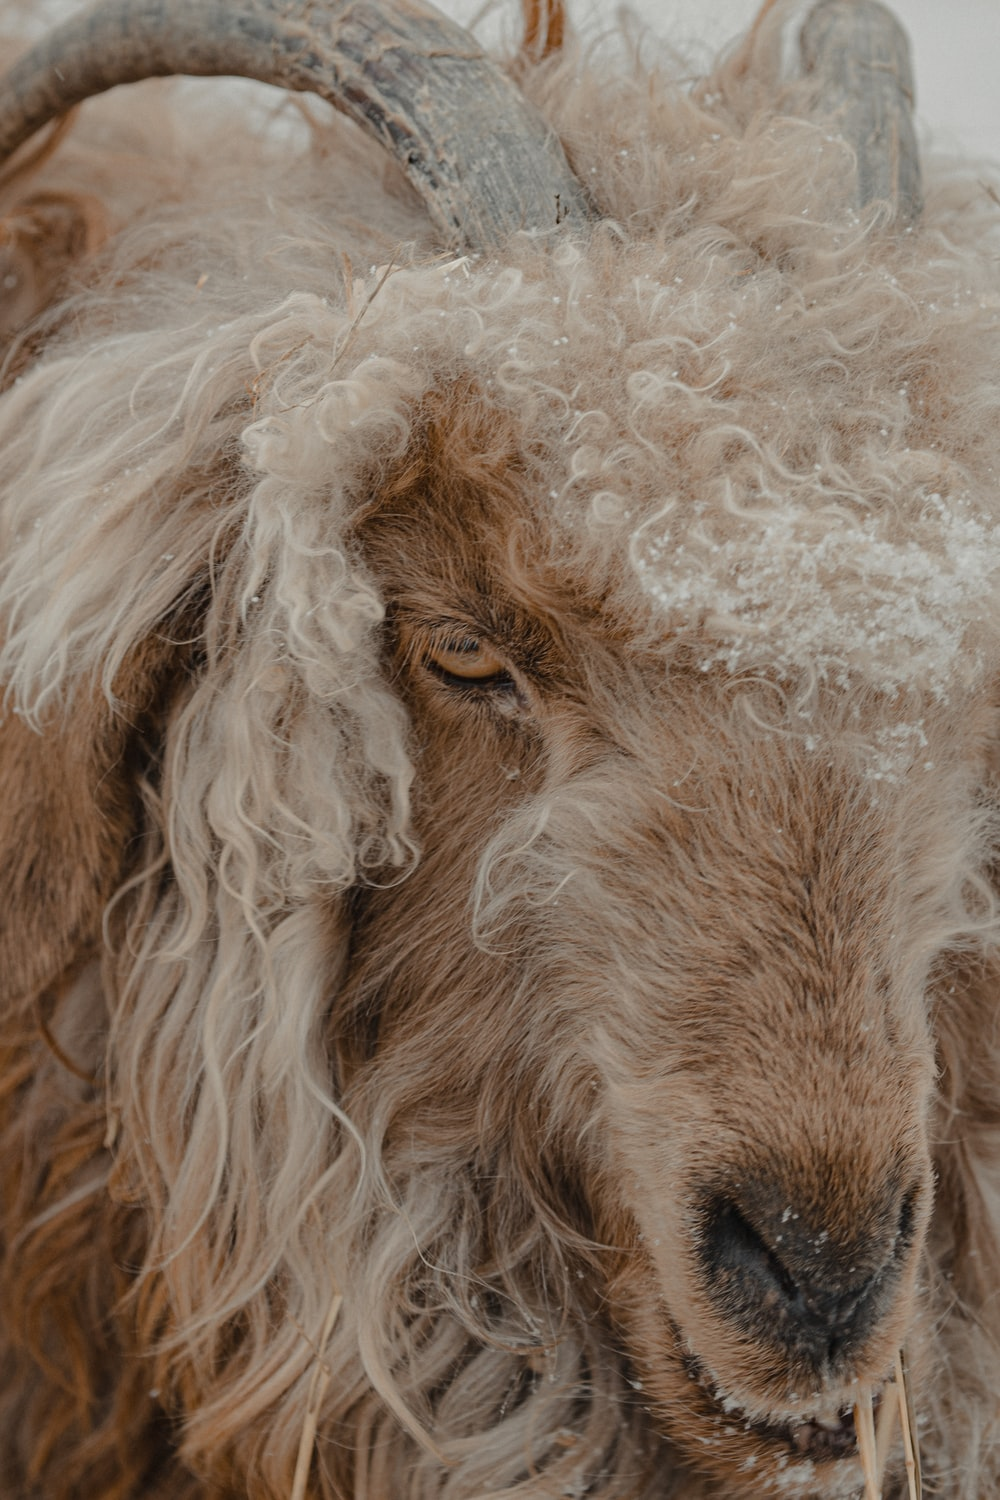 white and brown sheep with white fur